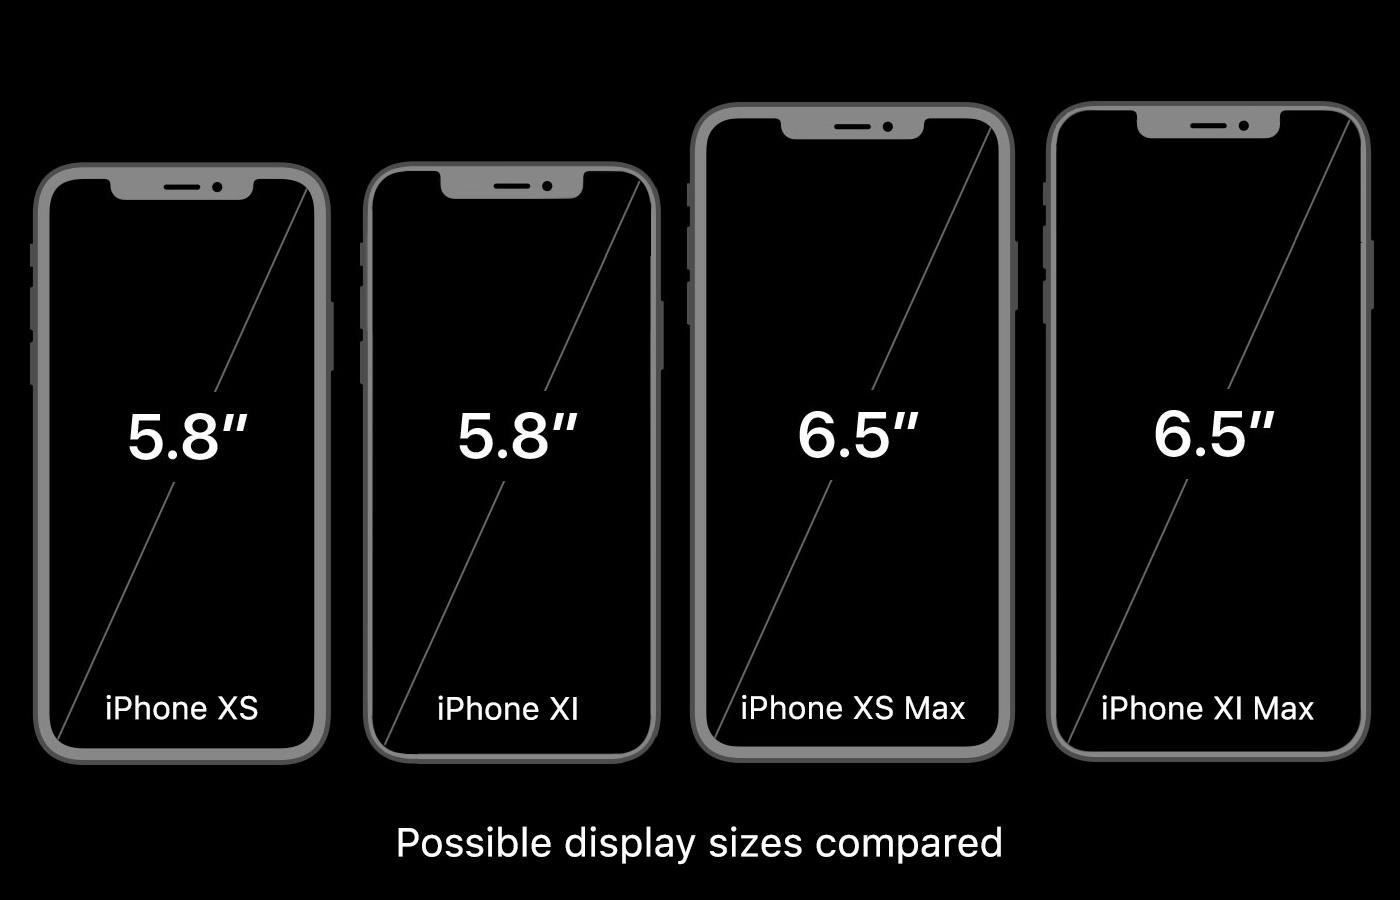 2019 iPhone Rumors: Everything We Know About the iPhone 11